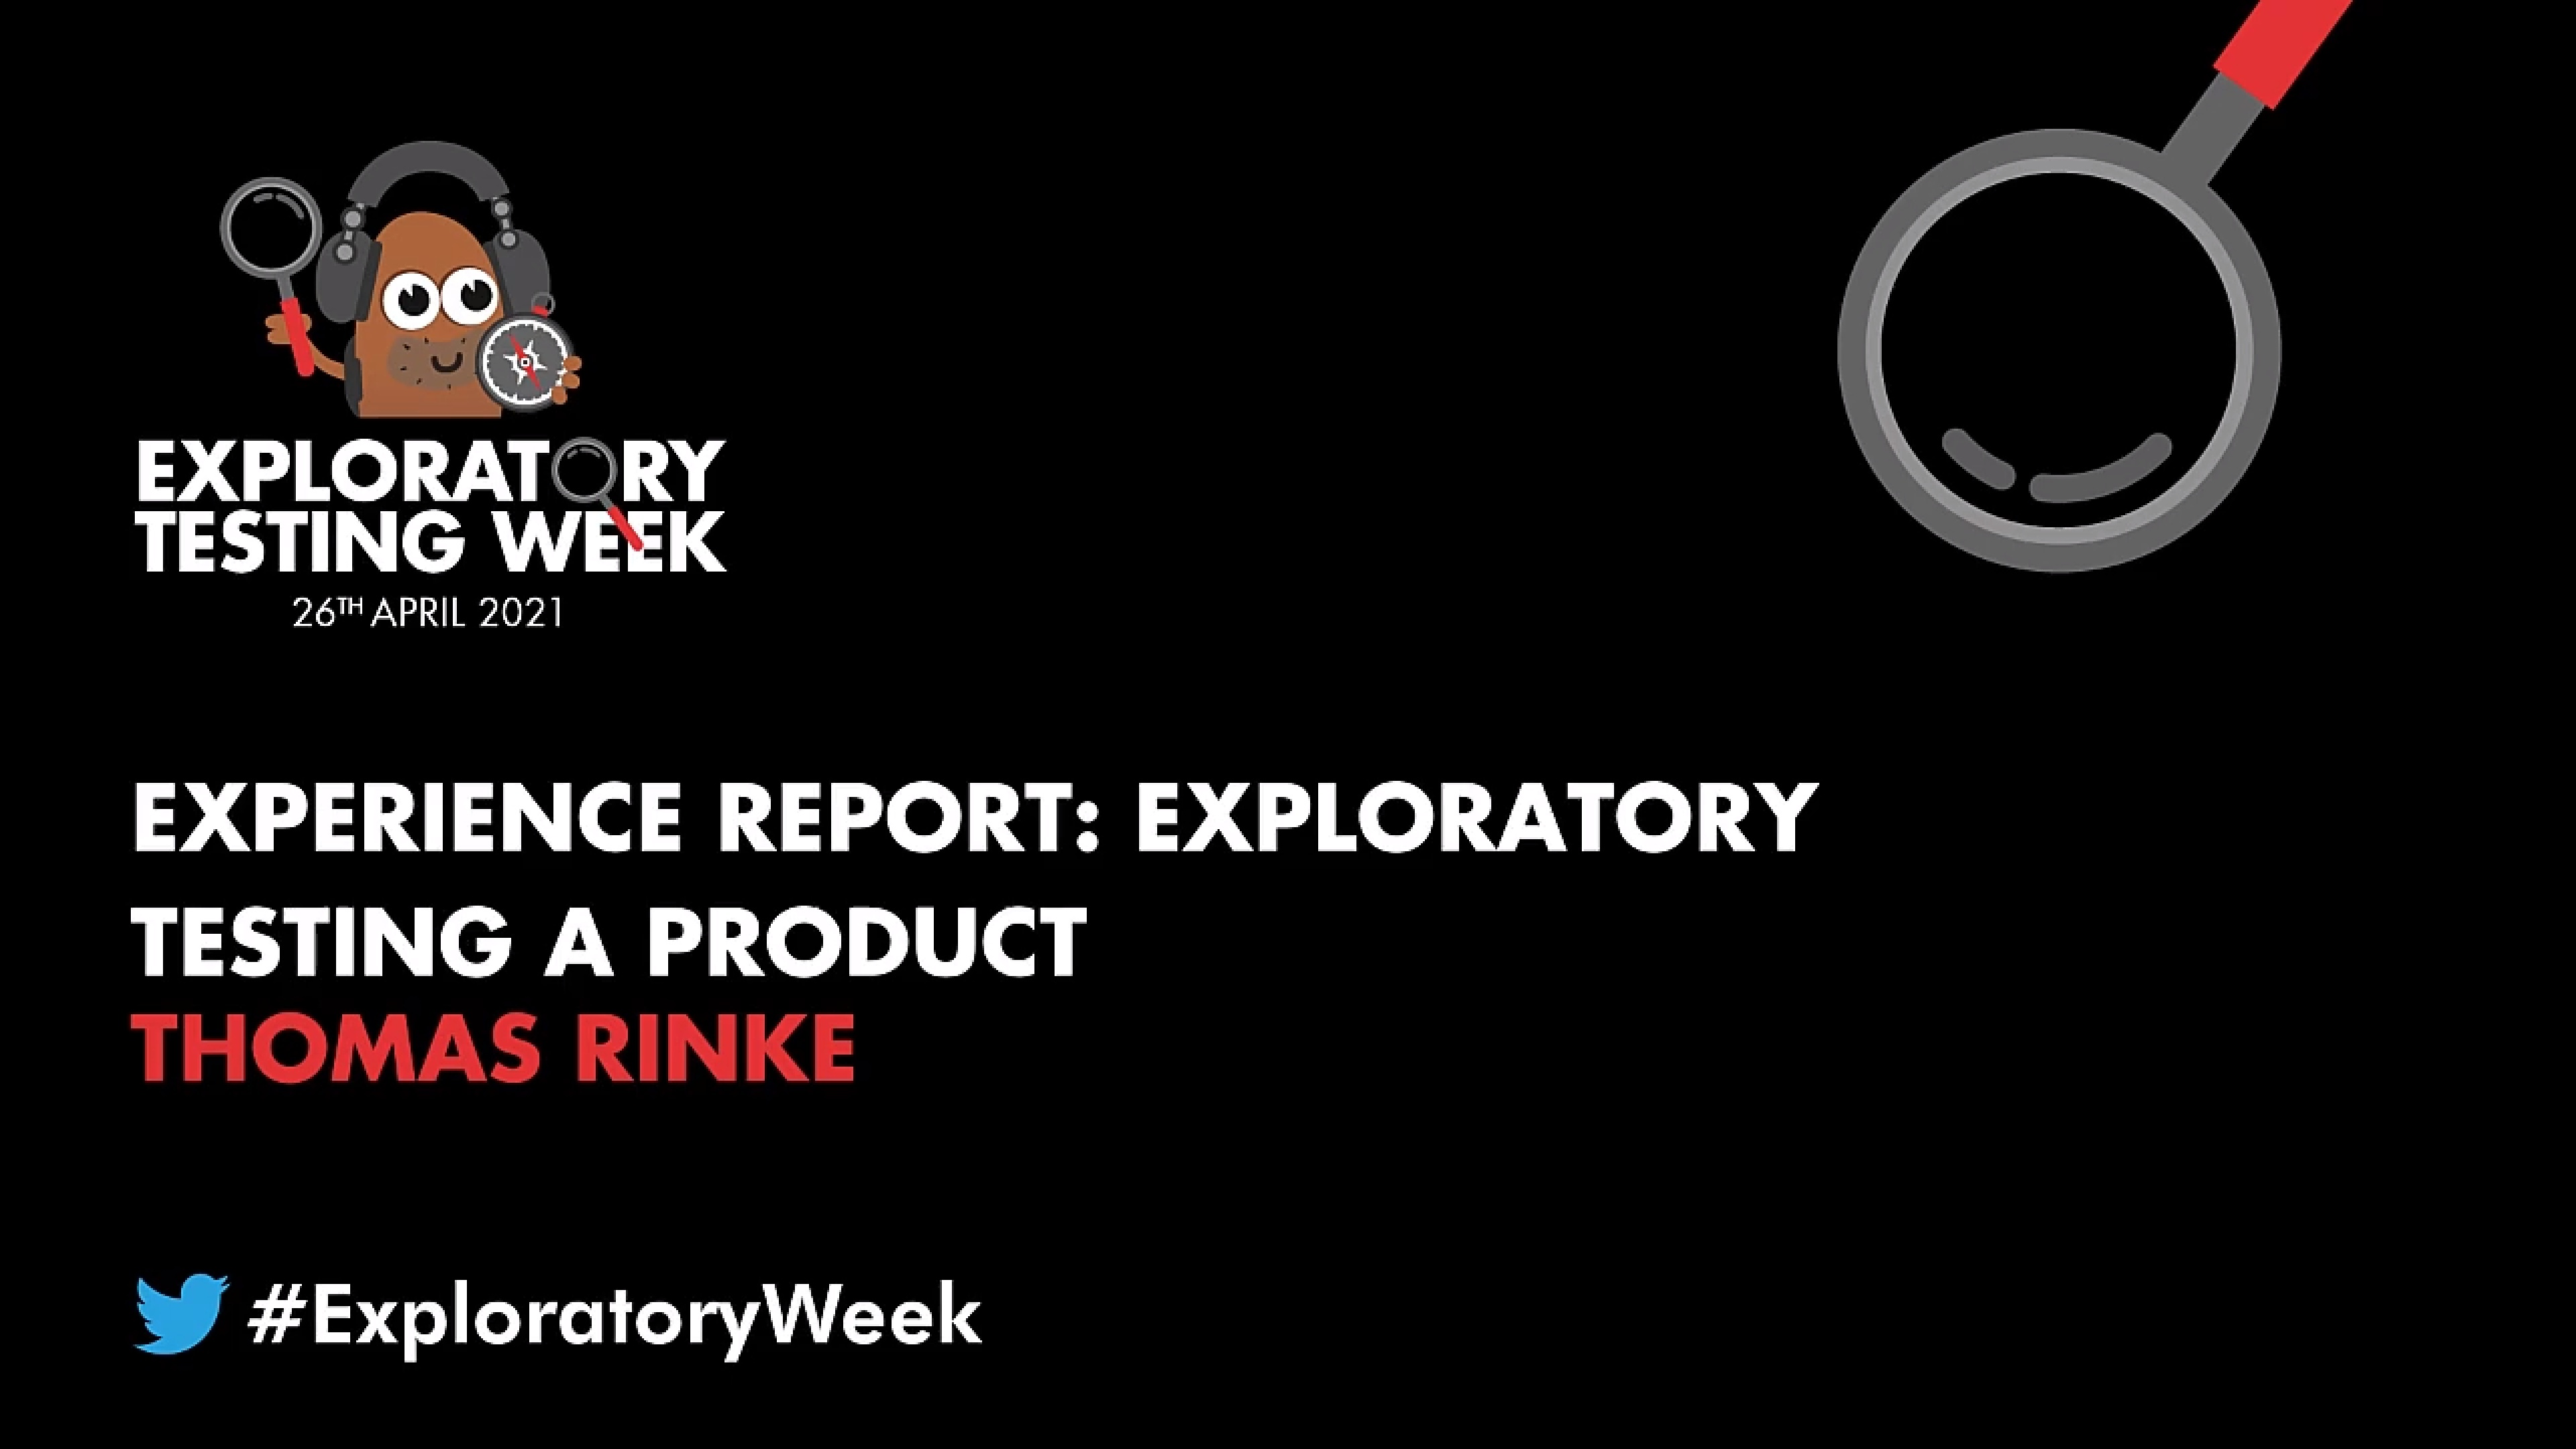 Experience Report: Exploratory Testing a Product with Thomas Rinke